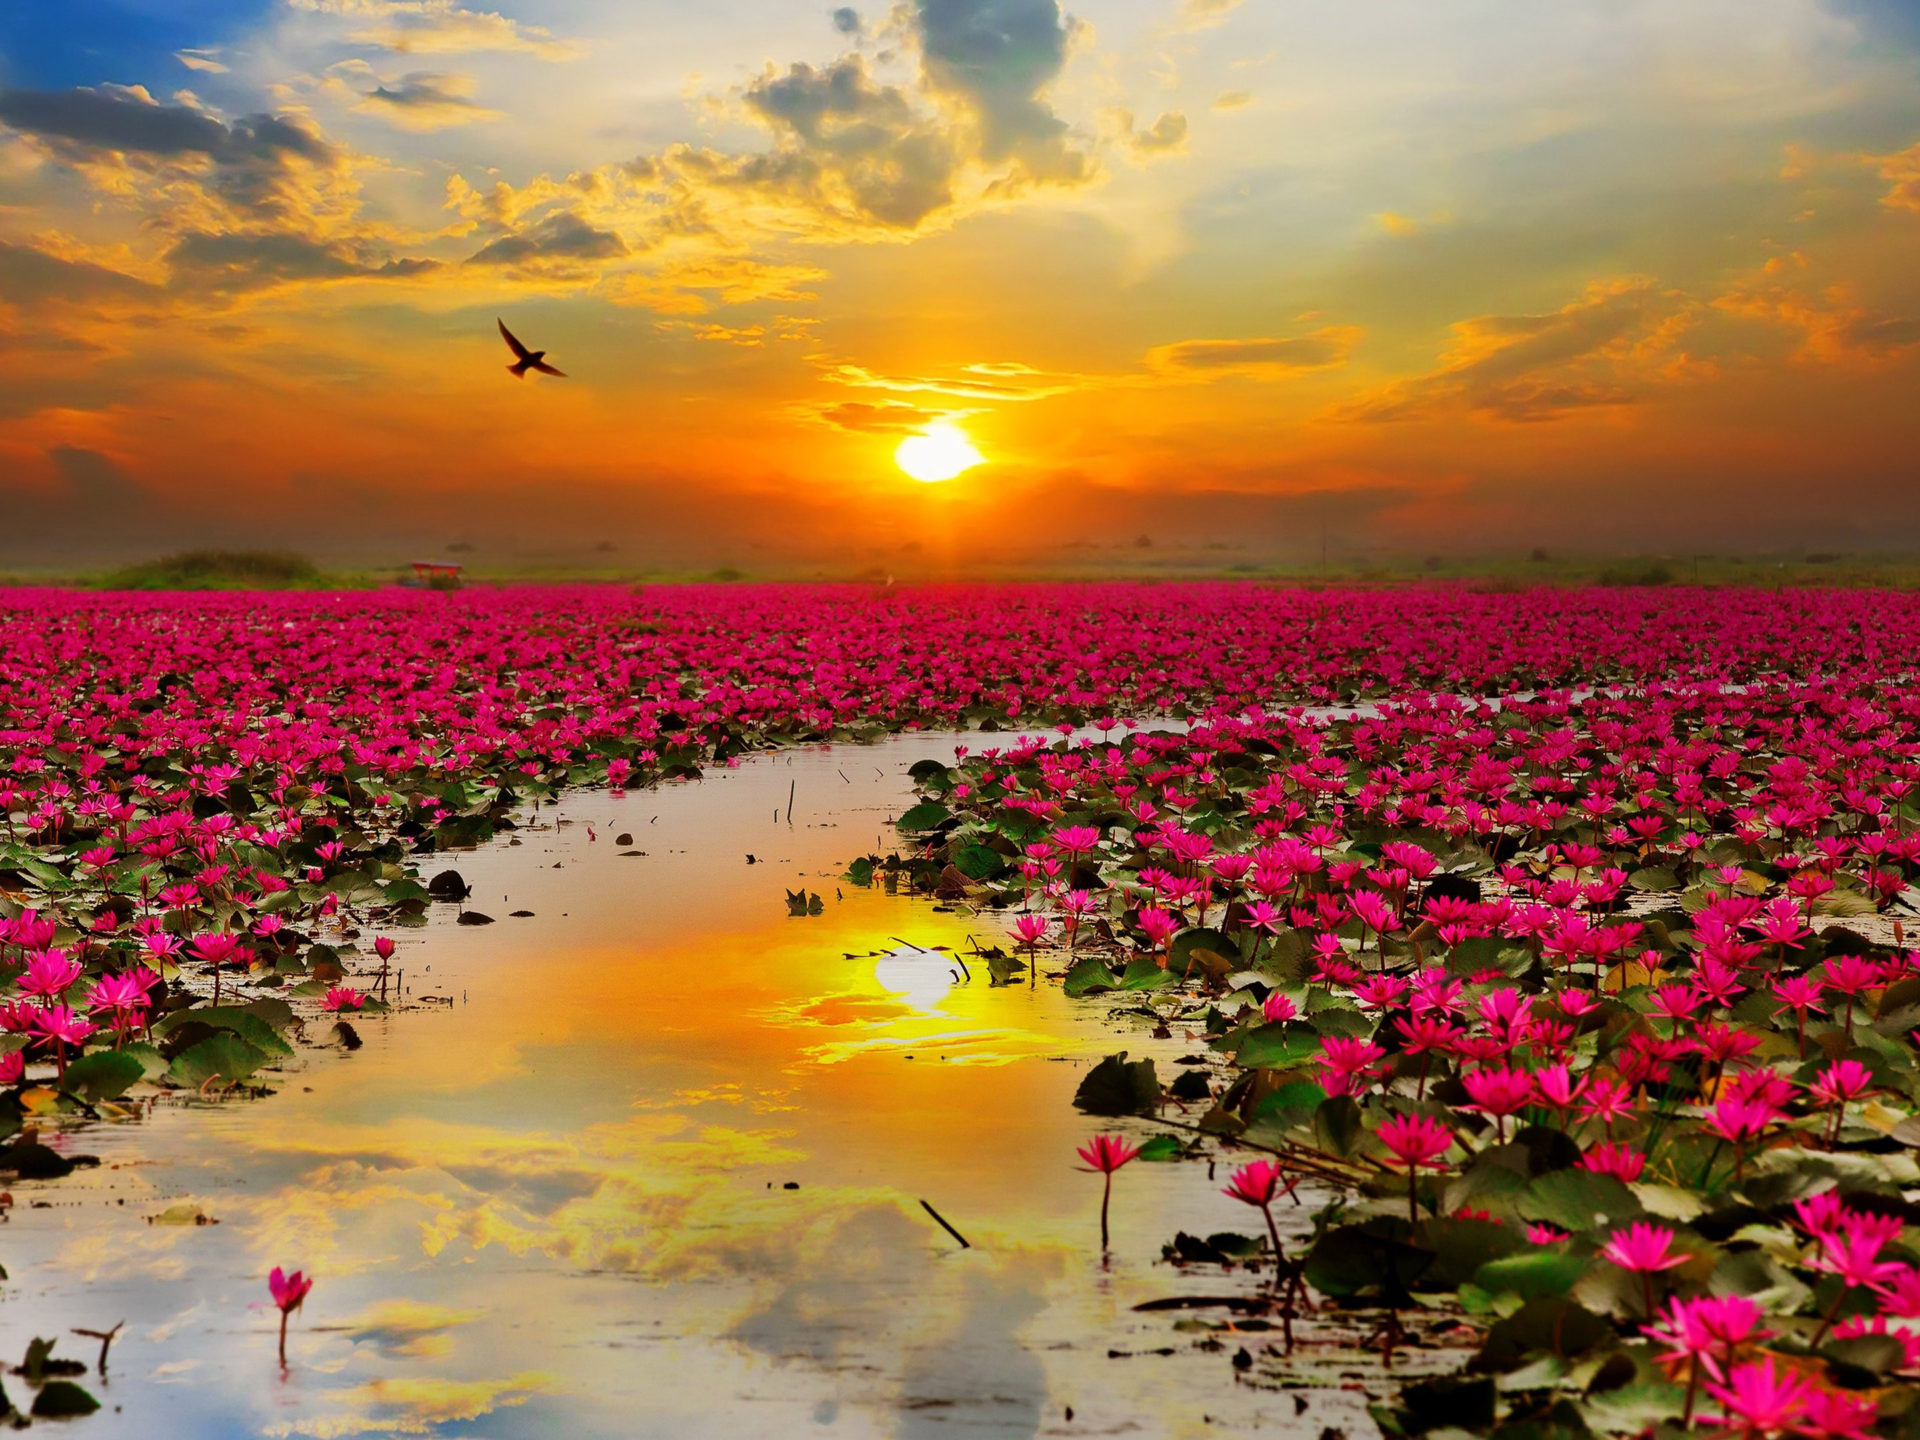 Hd Wallpaper Sea Beach Lotus Red Flowers Sunset Sun Rays The Red Sea In The